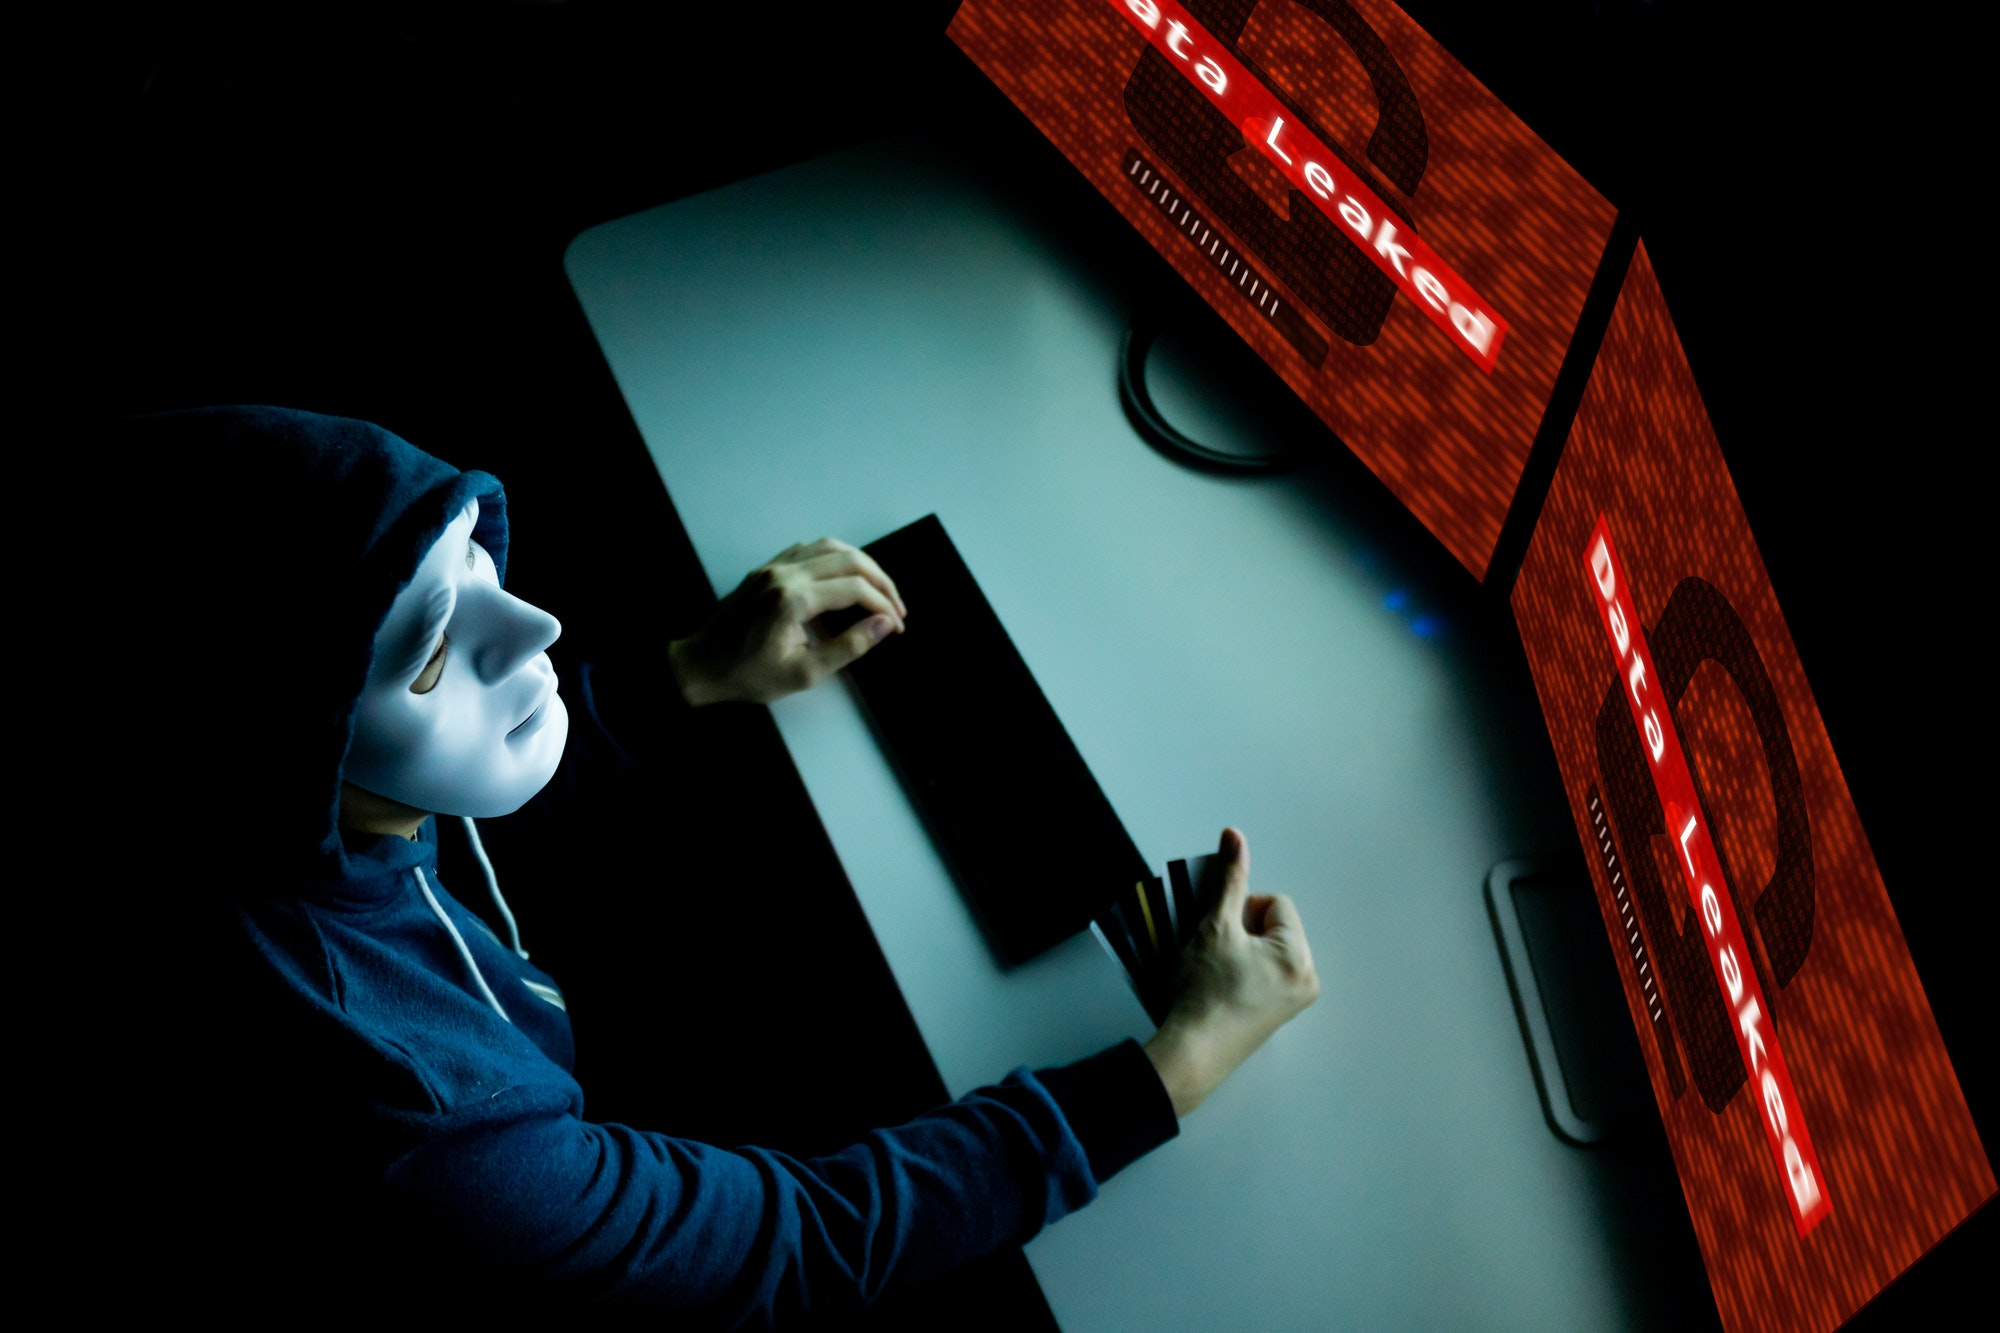 Masked hacker under hood using computer to hack into system and employ data leaking process